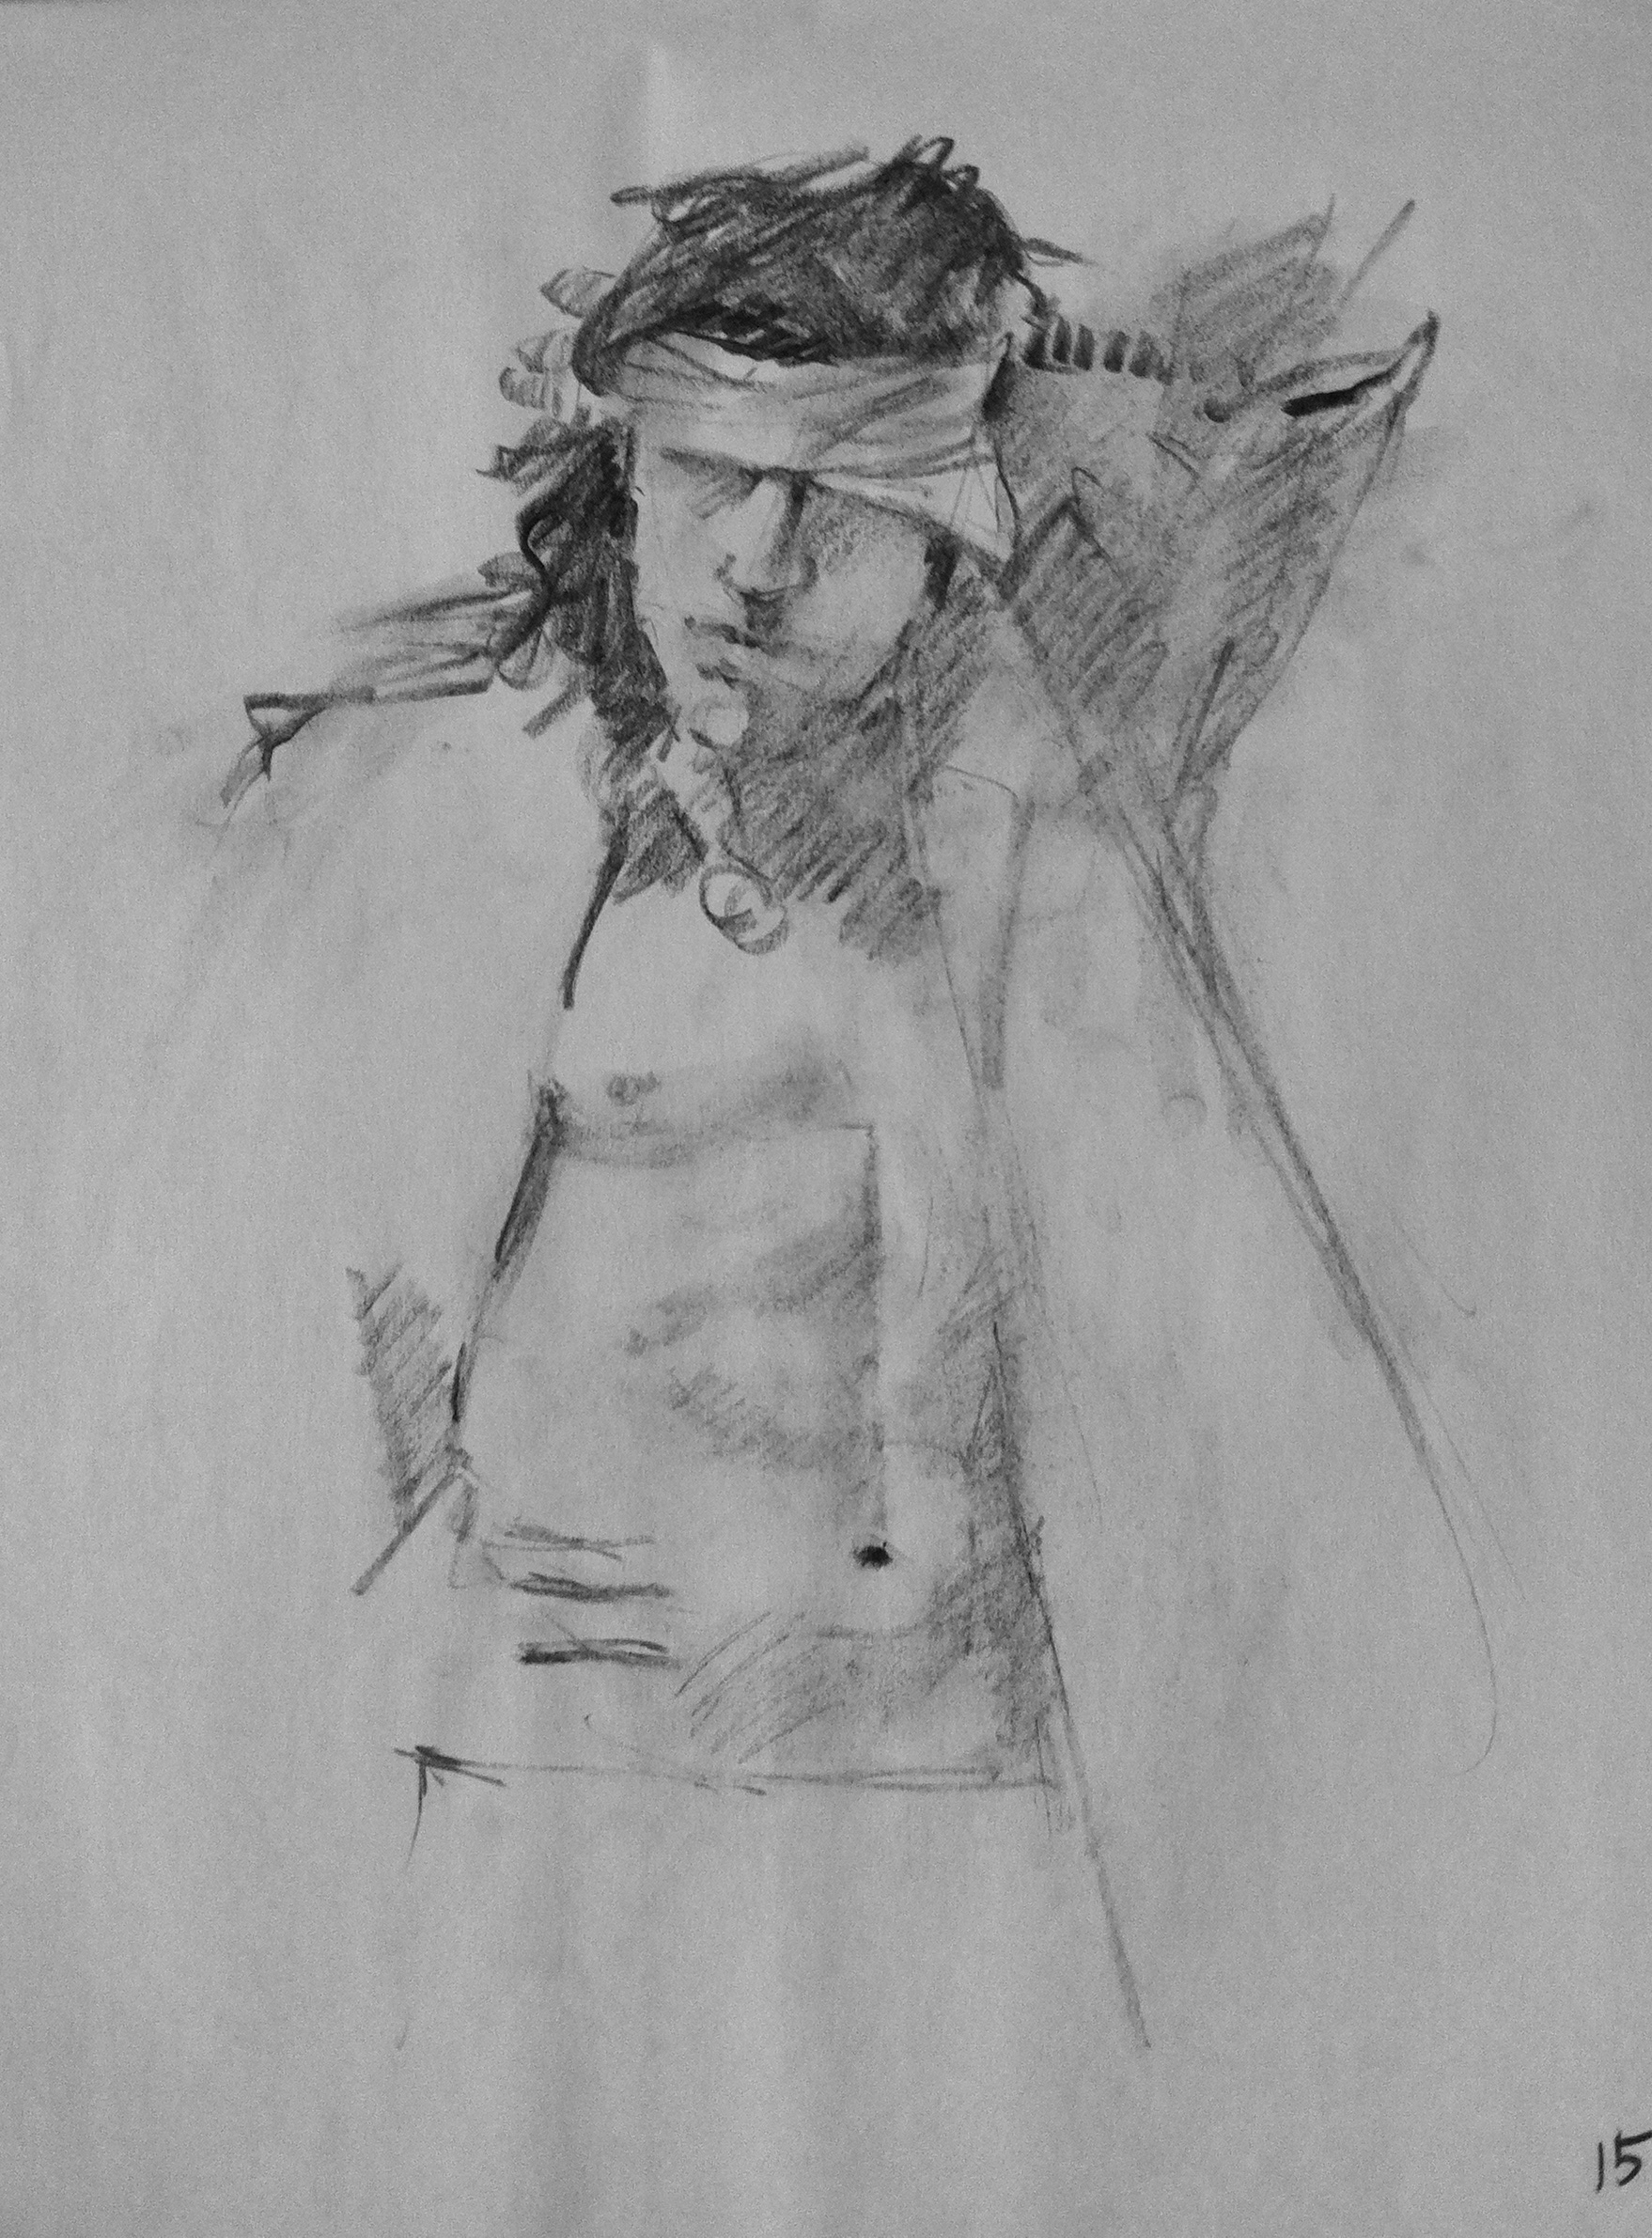 Nick at the AFA Gallery in Scranton. It was Nicks first time modeling ever. He was terrific  Willow stick charcoal on rough newsprint 15 minute pose  11/12/13